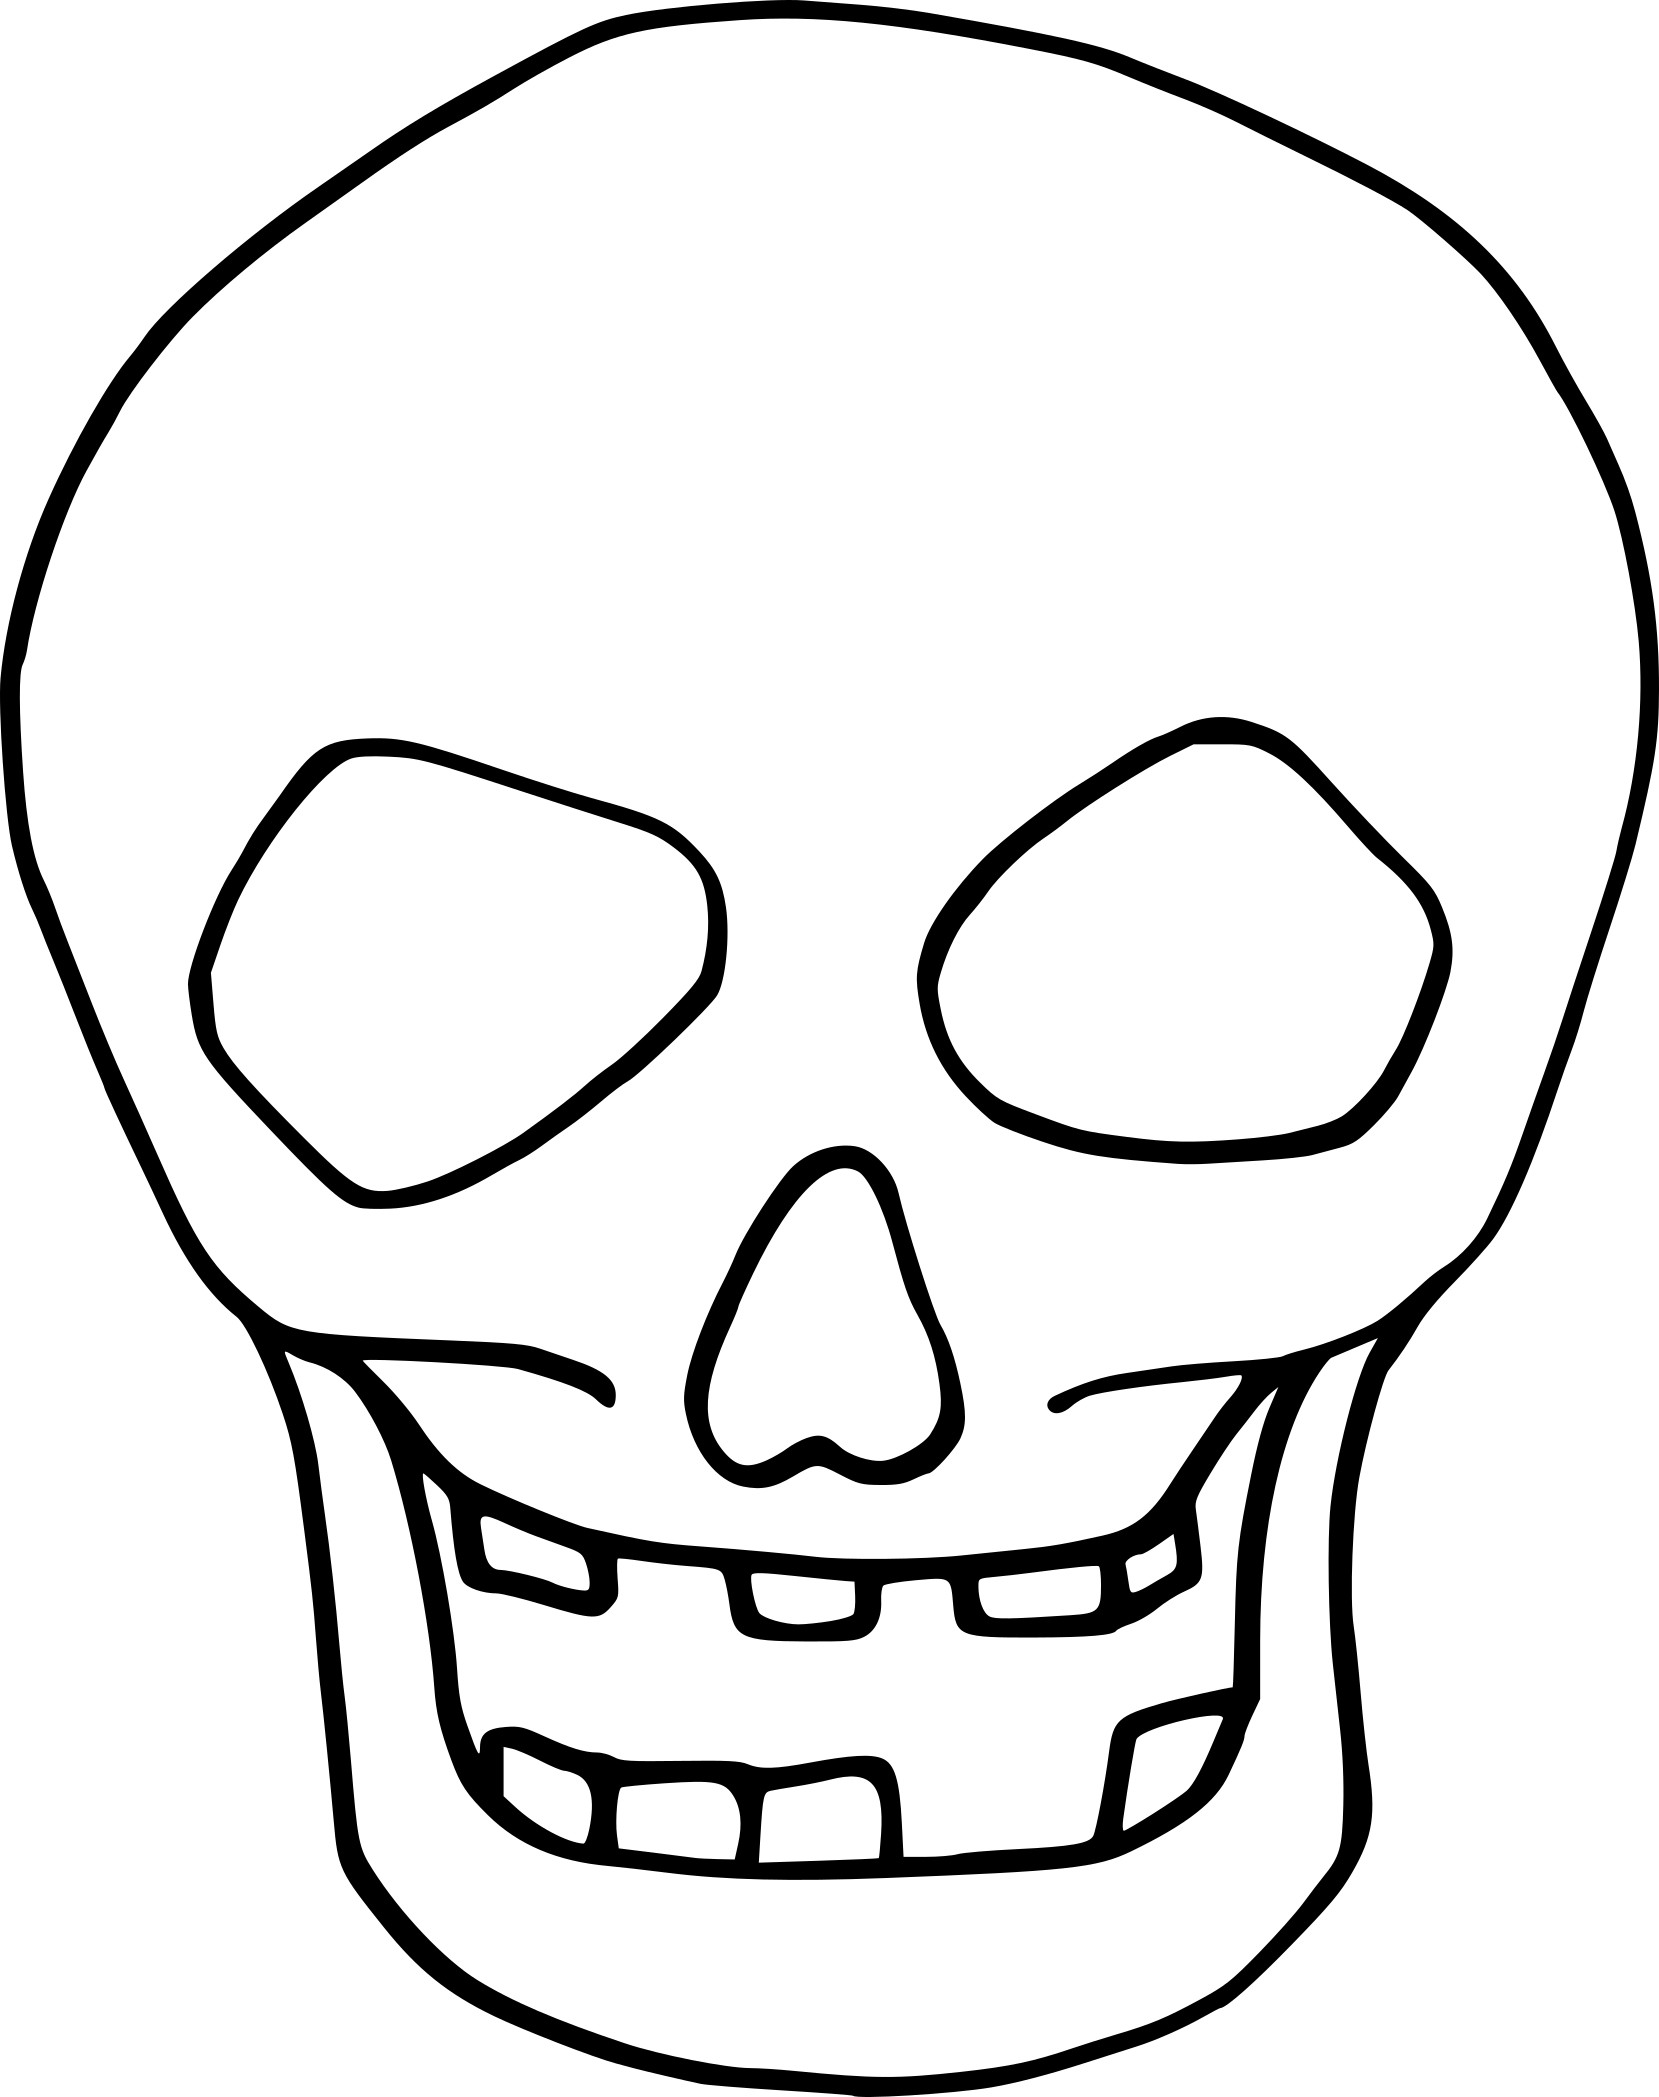 halloween face mask templates - coloriage t te de mort halloween imprimer sur coloriages